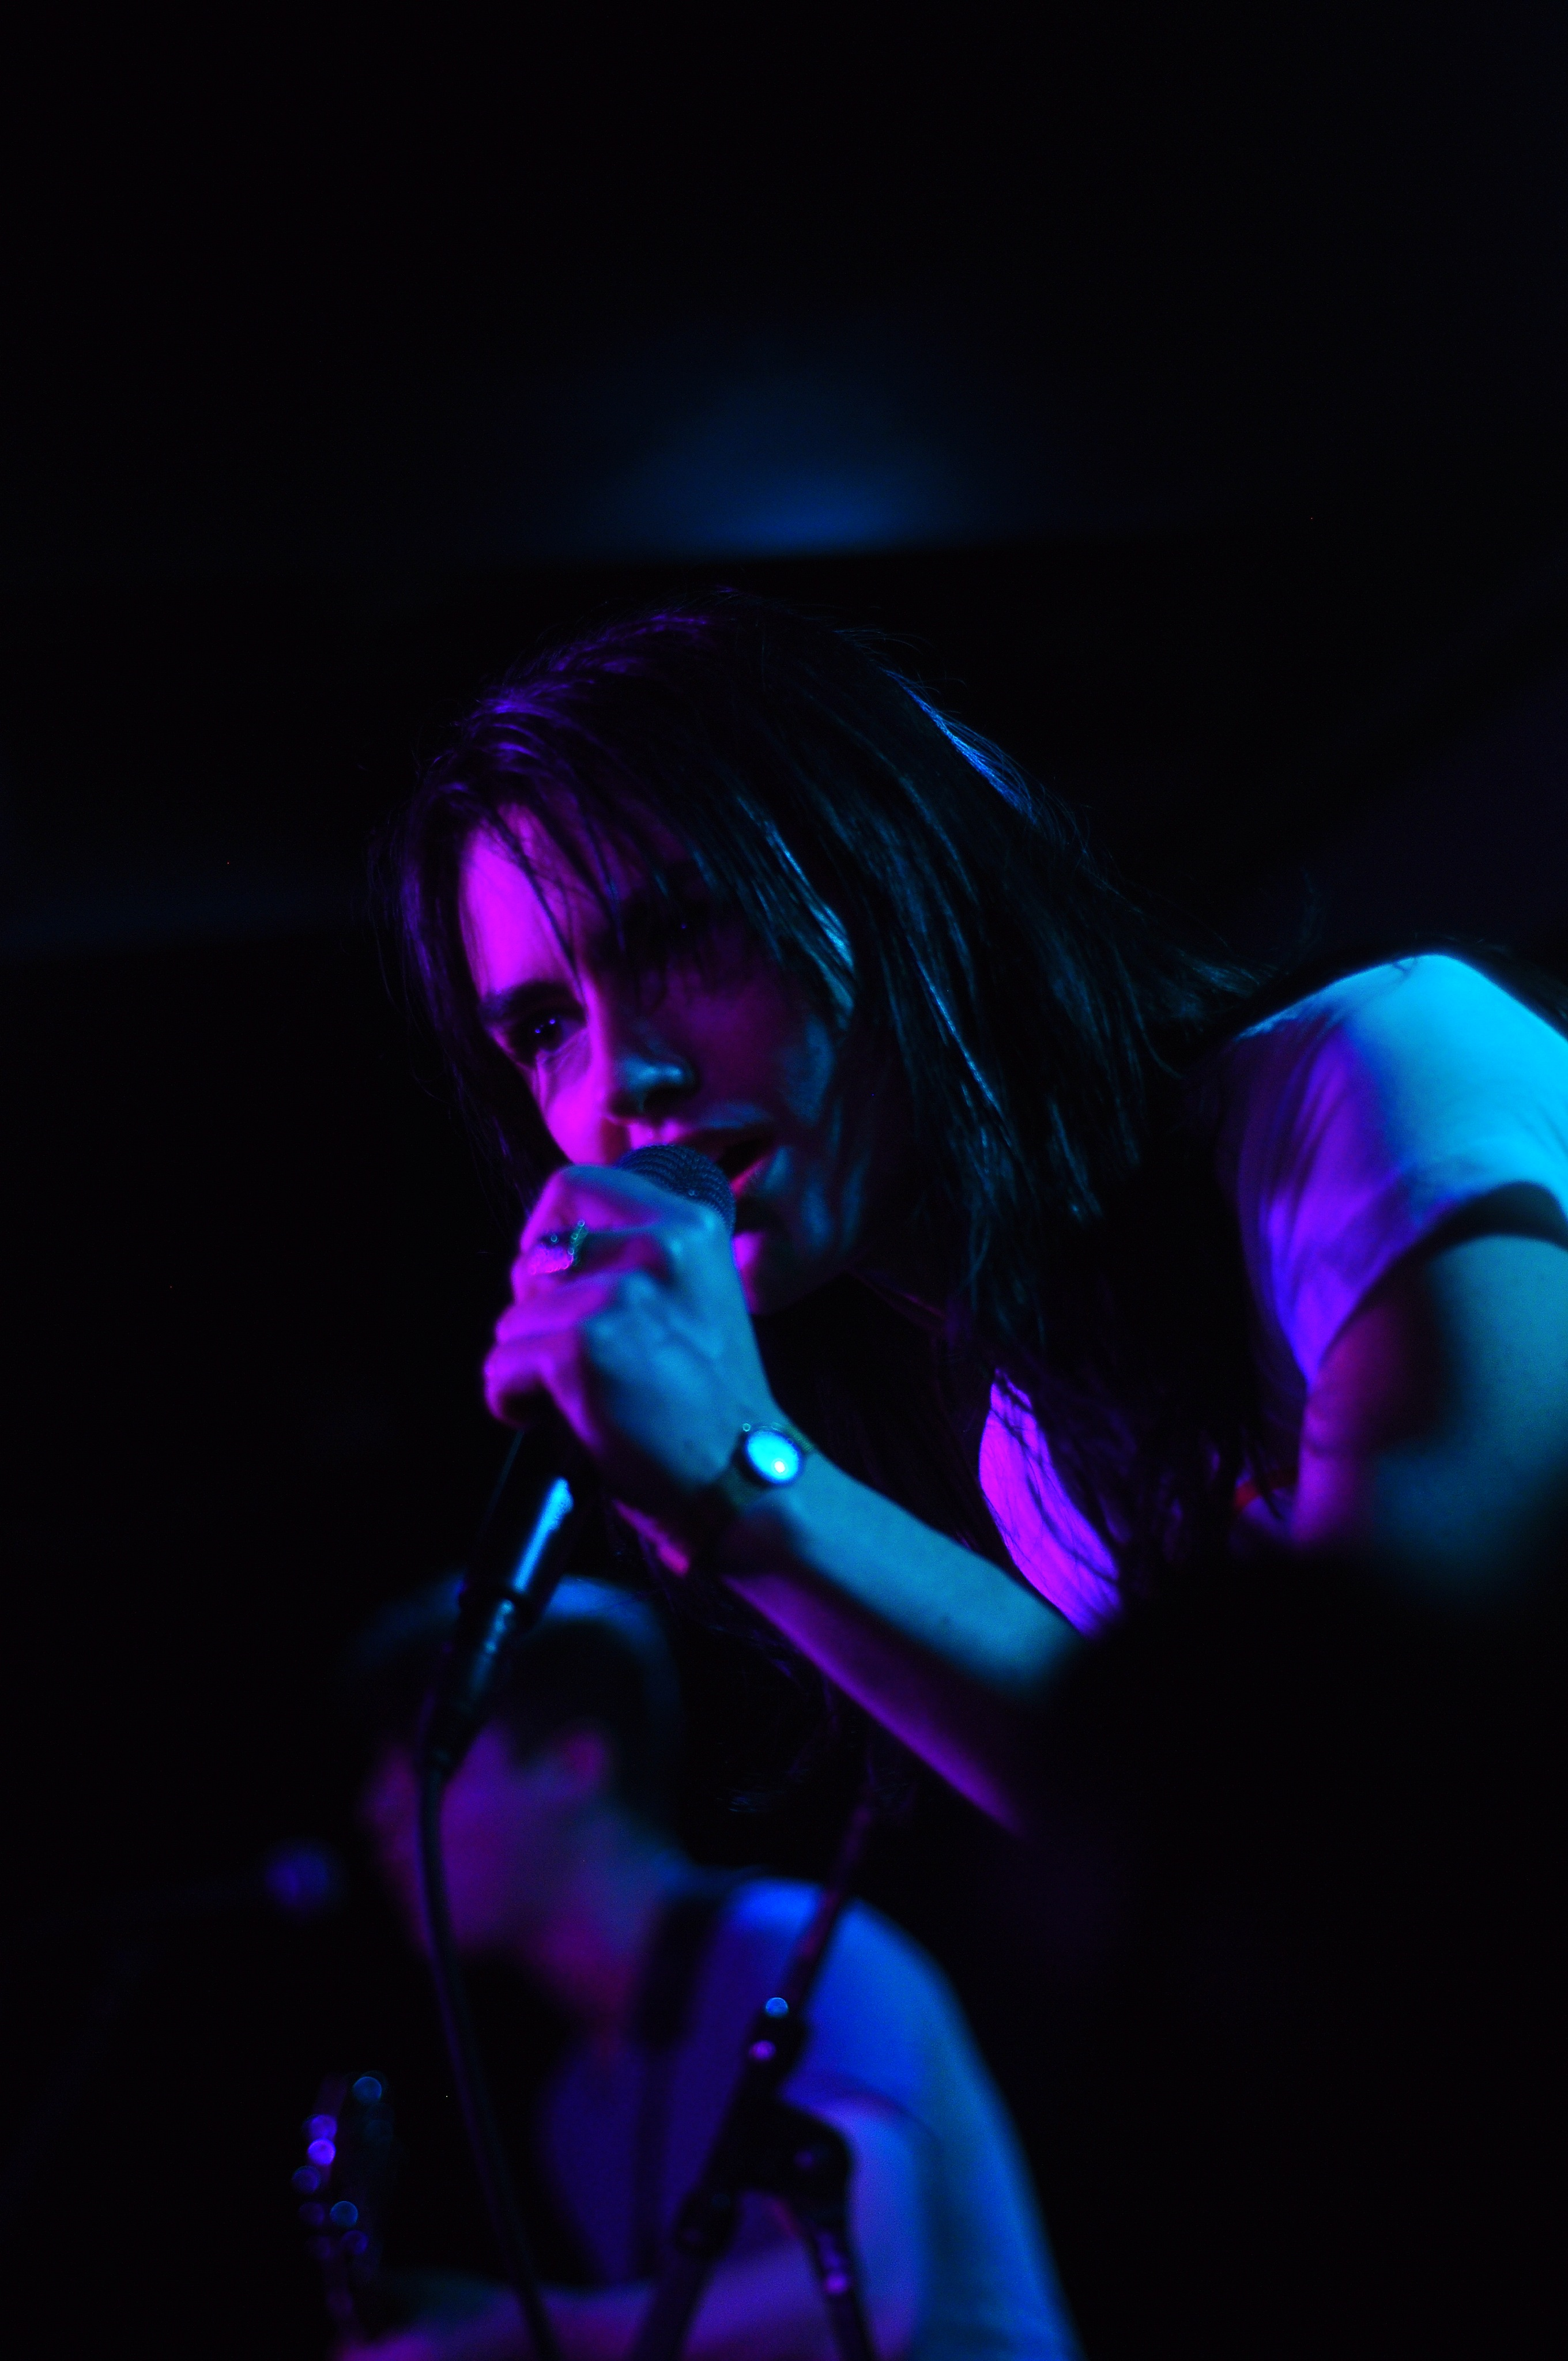 thecoffeetographer_preatures_cmj_smdlr_final_13